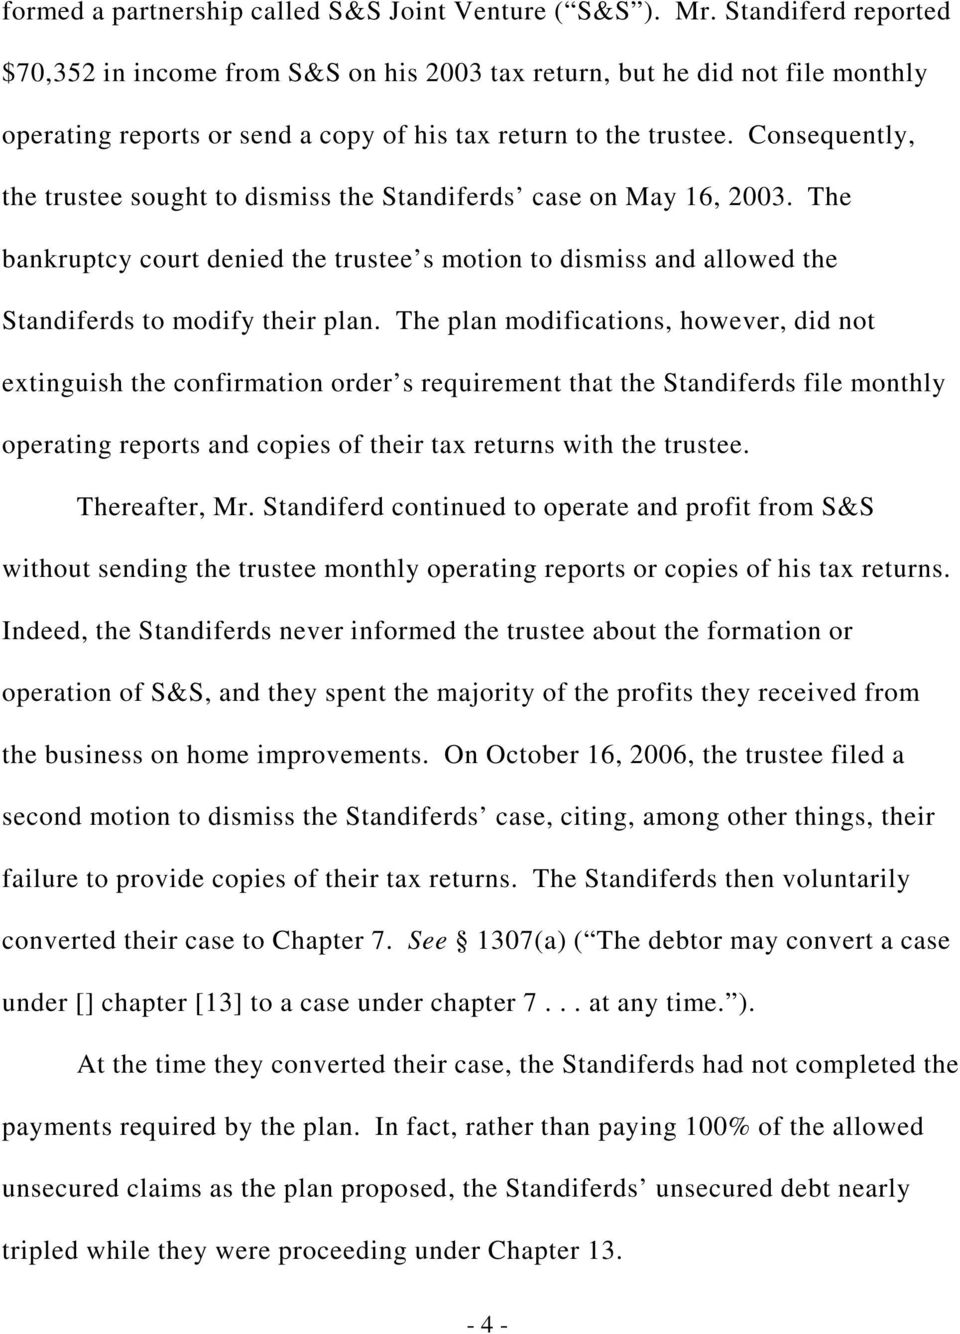 Consequently, the trustee sought to dismiss the Standiferds case on May 16, 2003. The bankruptcy court denied the trustee s motion to dismiss and allowed the Standiferds to modify their plan.